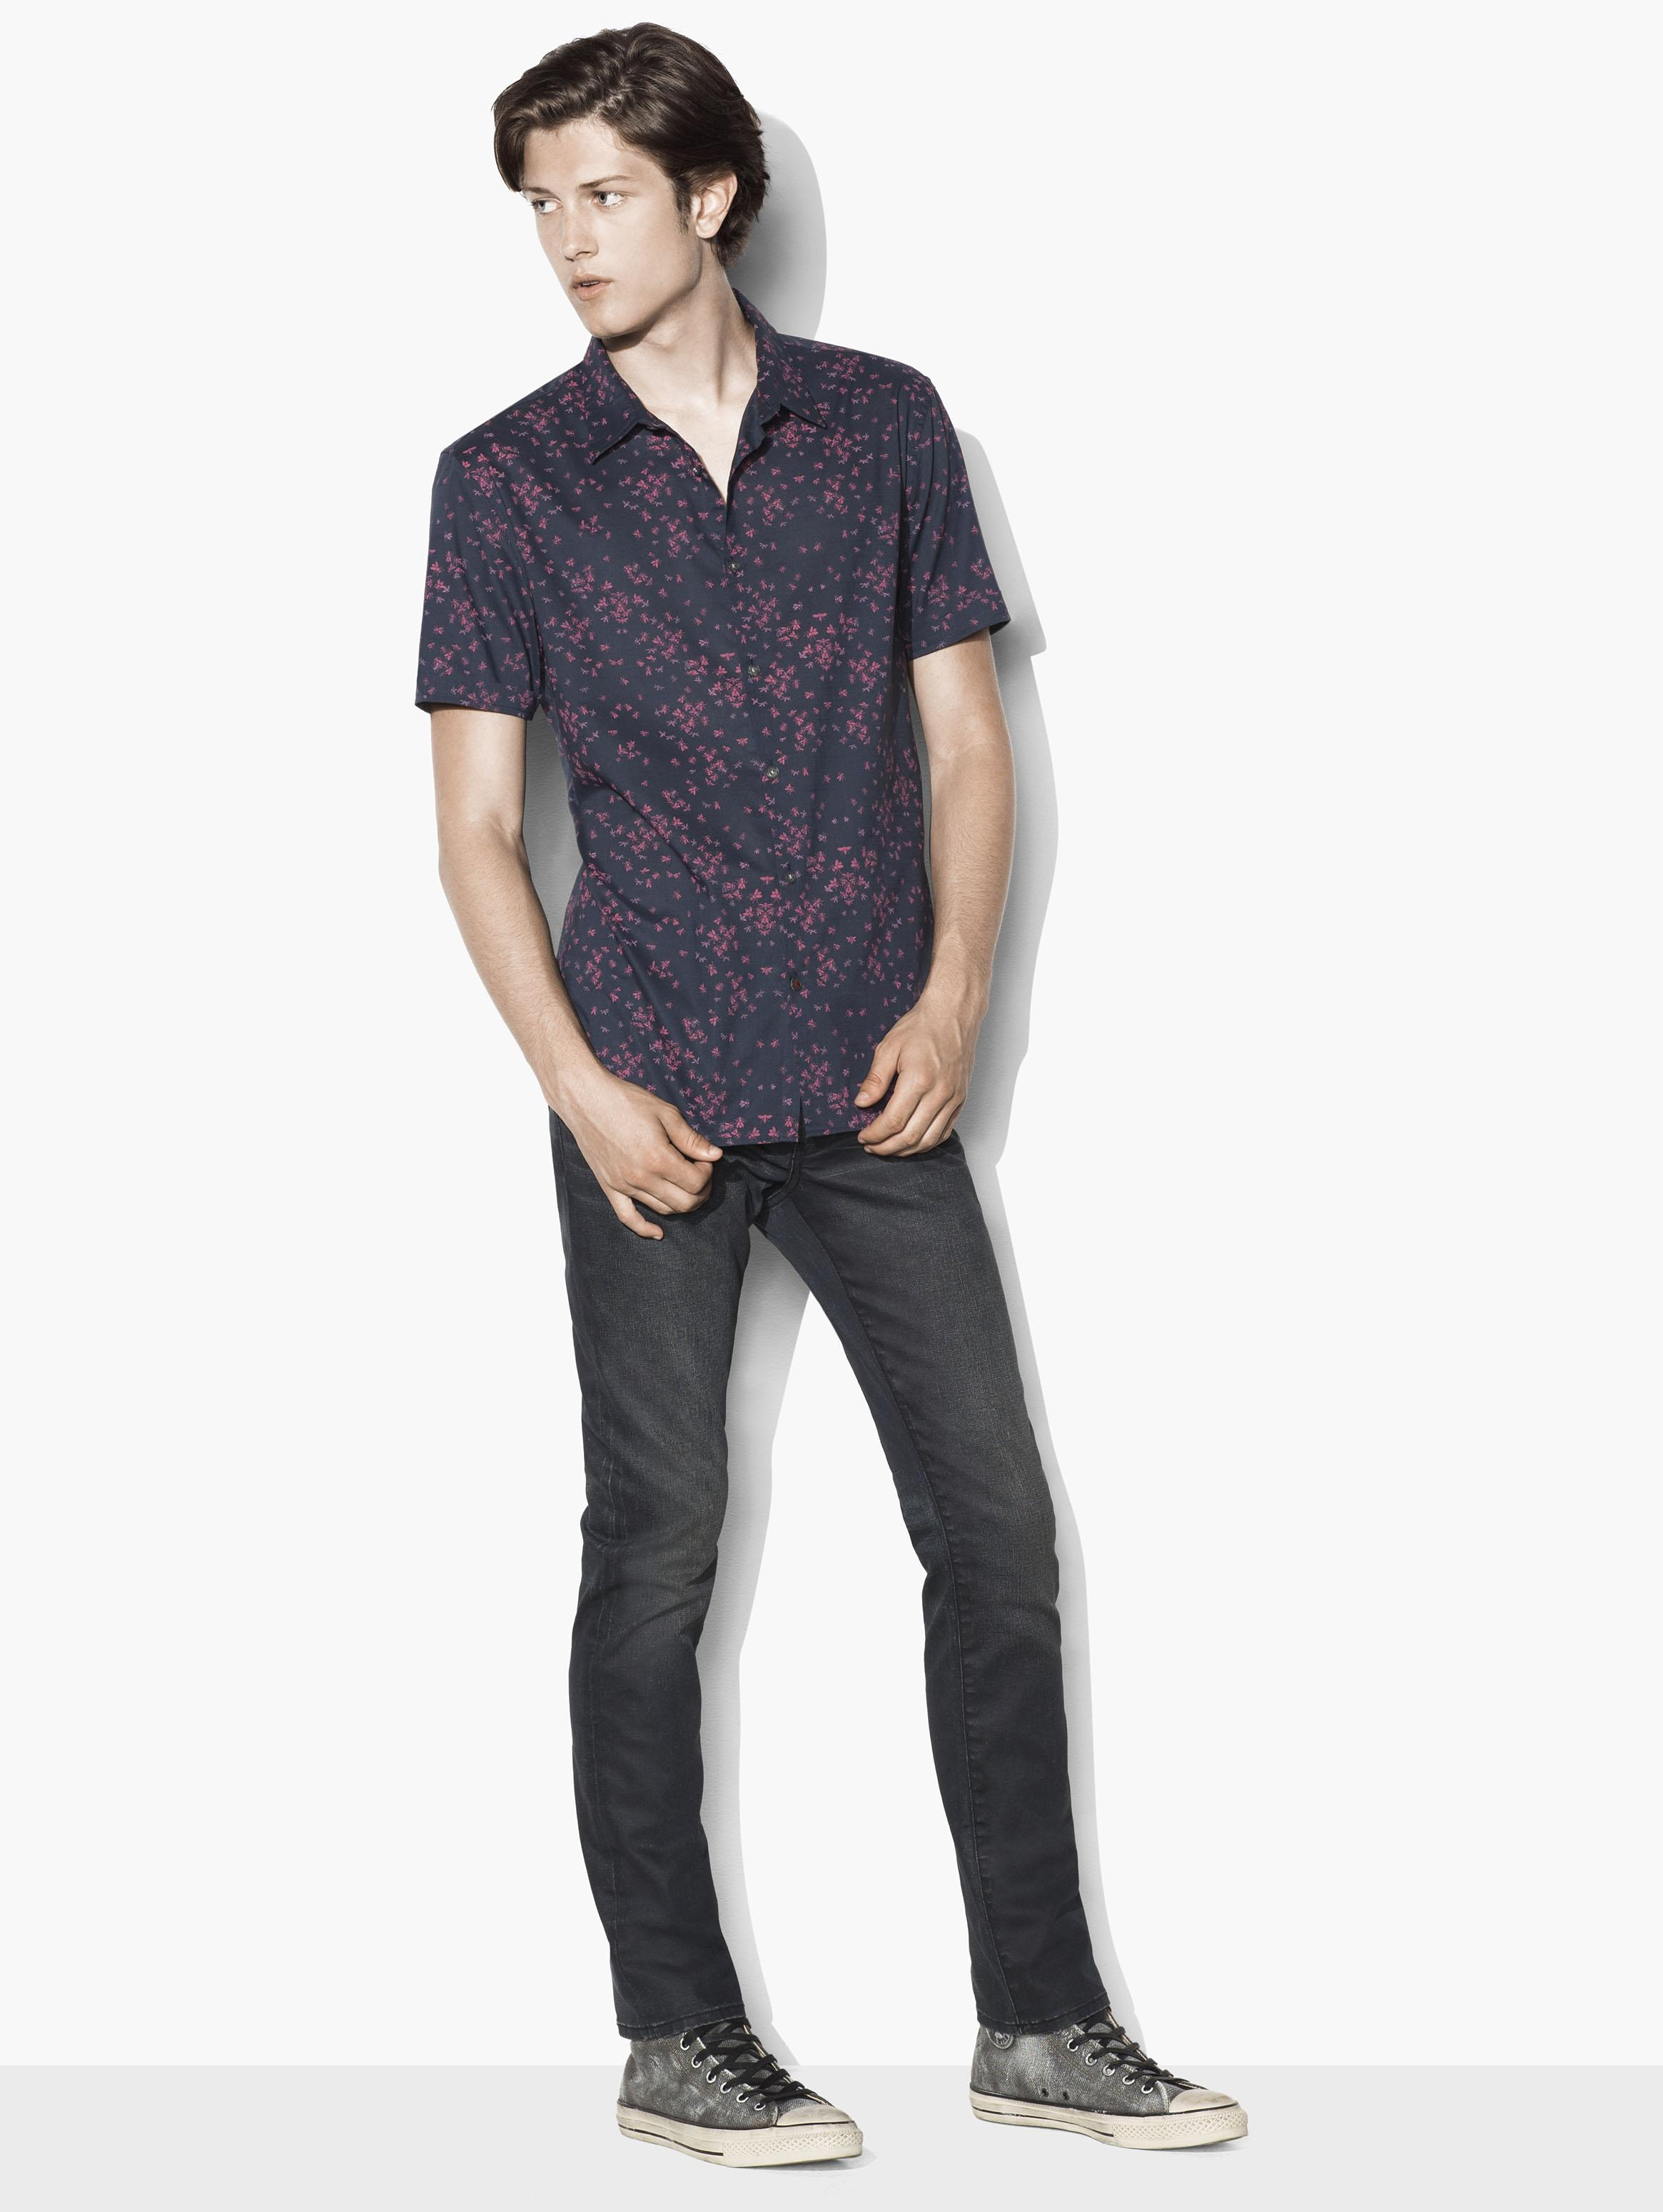 Short Sleeve Patterned Shirt